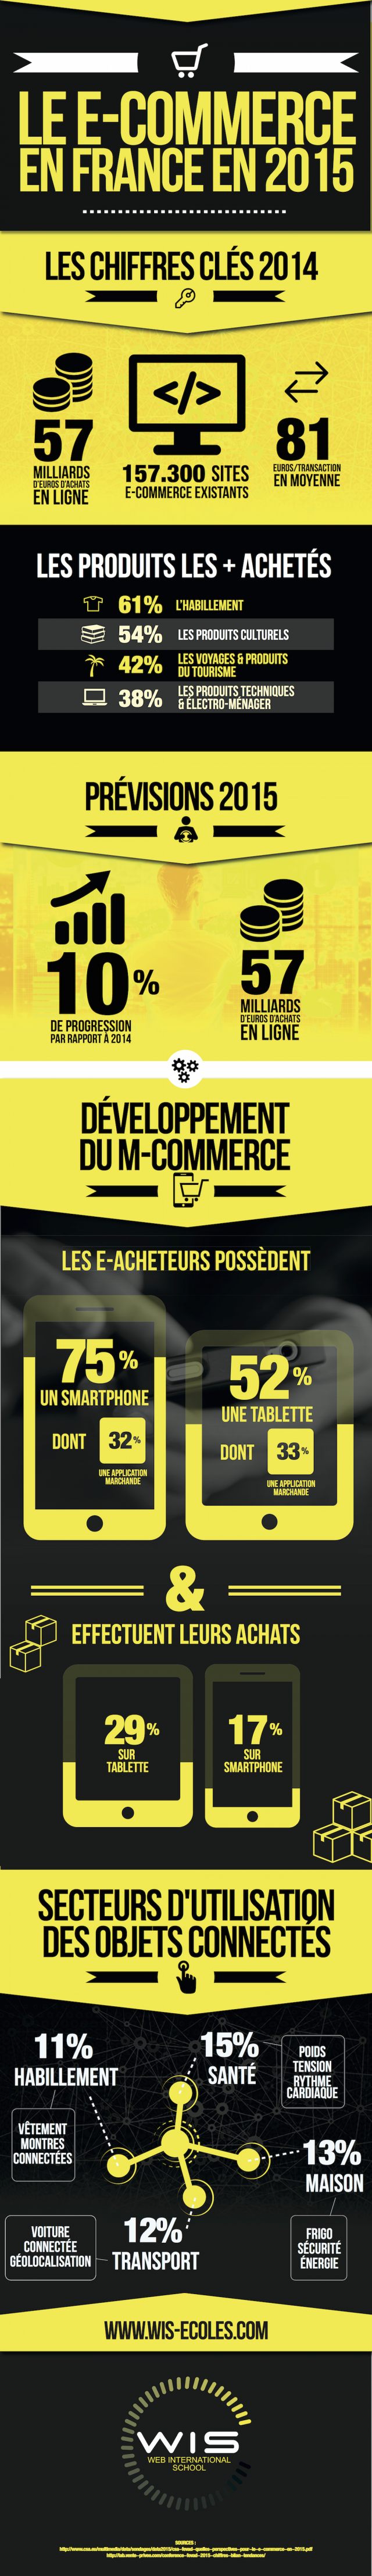 E-commerce 2015 en France